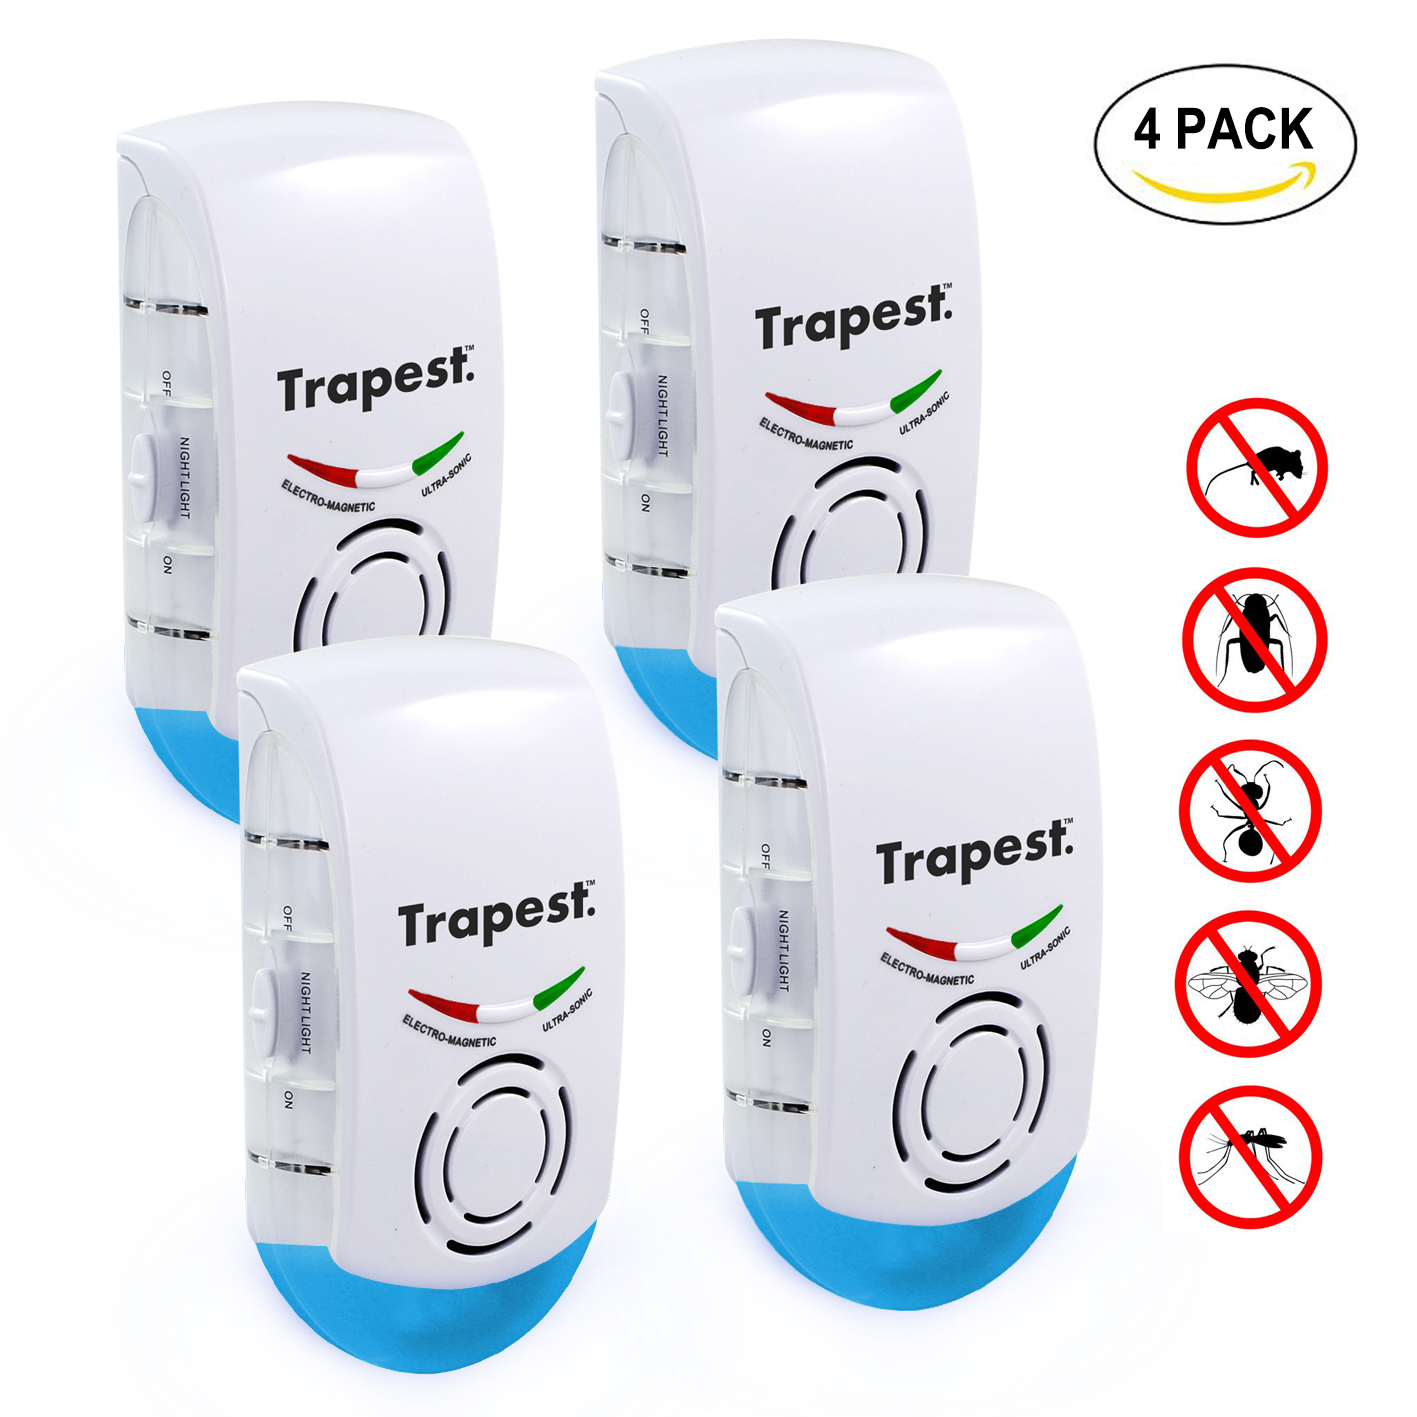 3-in-1 Ultrasonic Pest Repeller by Trapest - Electromagnetic Pest Control with Night Light - Plug-in, No Maintenance